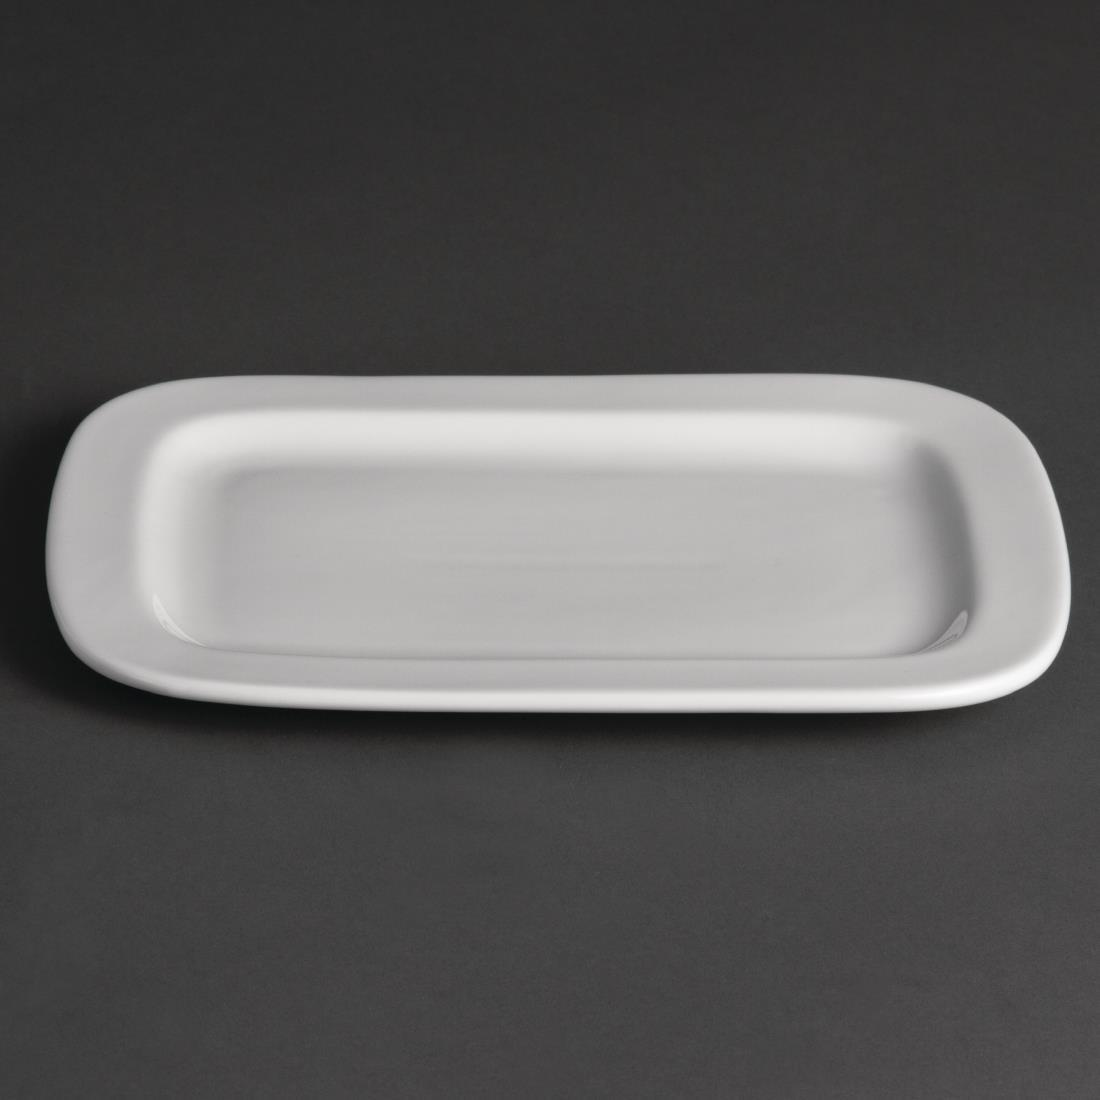 Olympia Whiteware Rounded Rectangular Plates 230mm